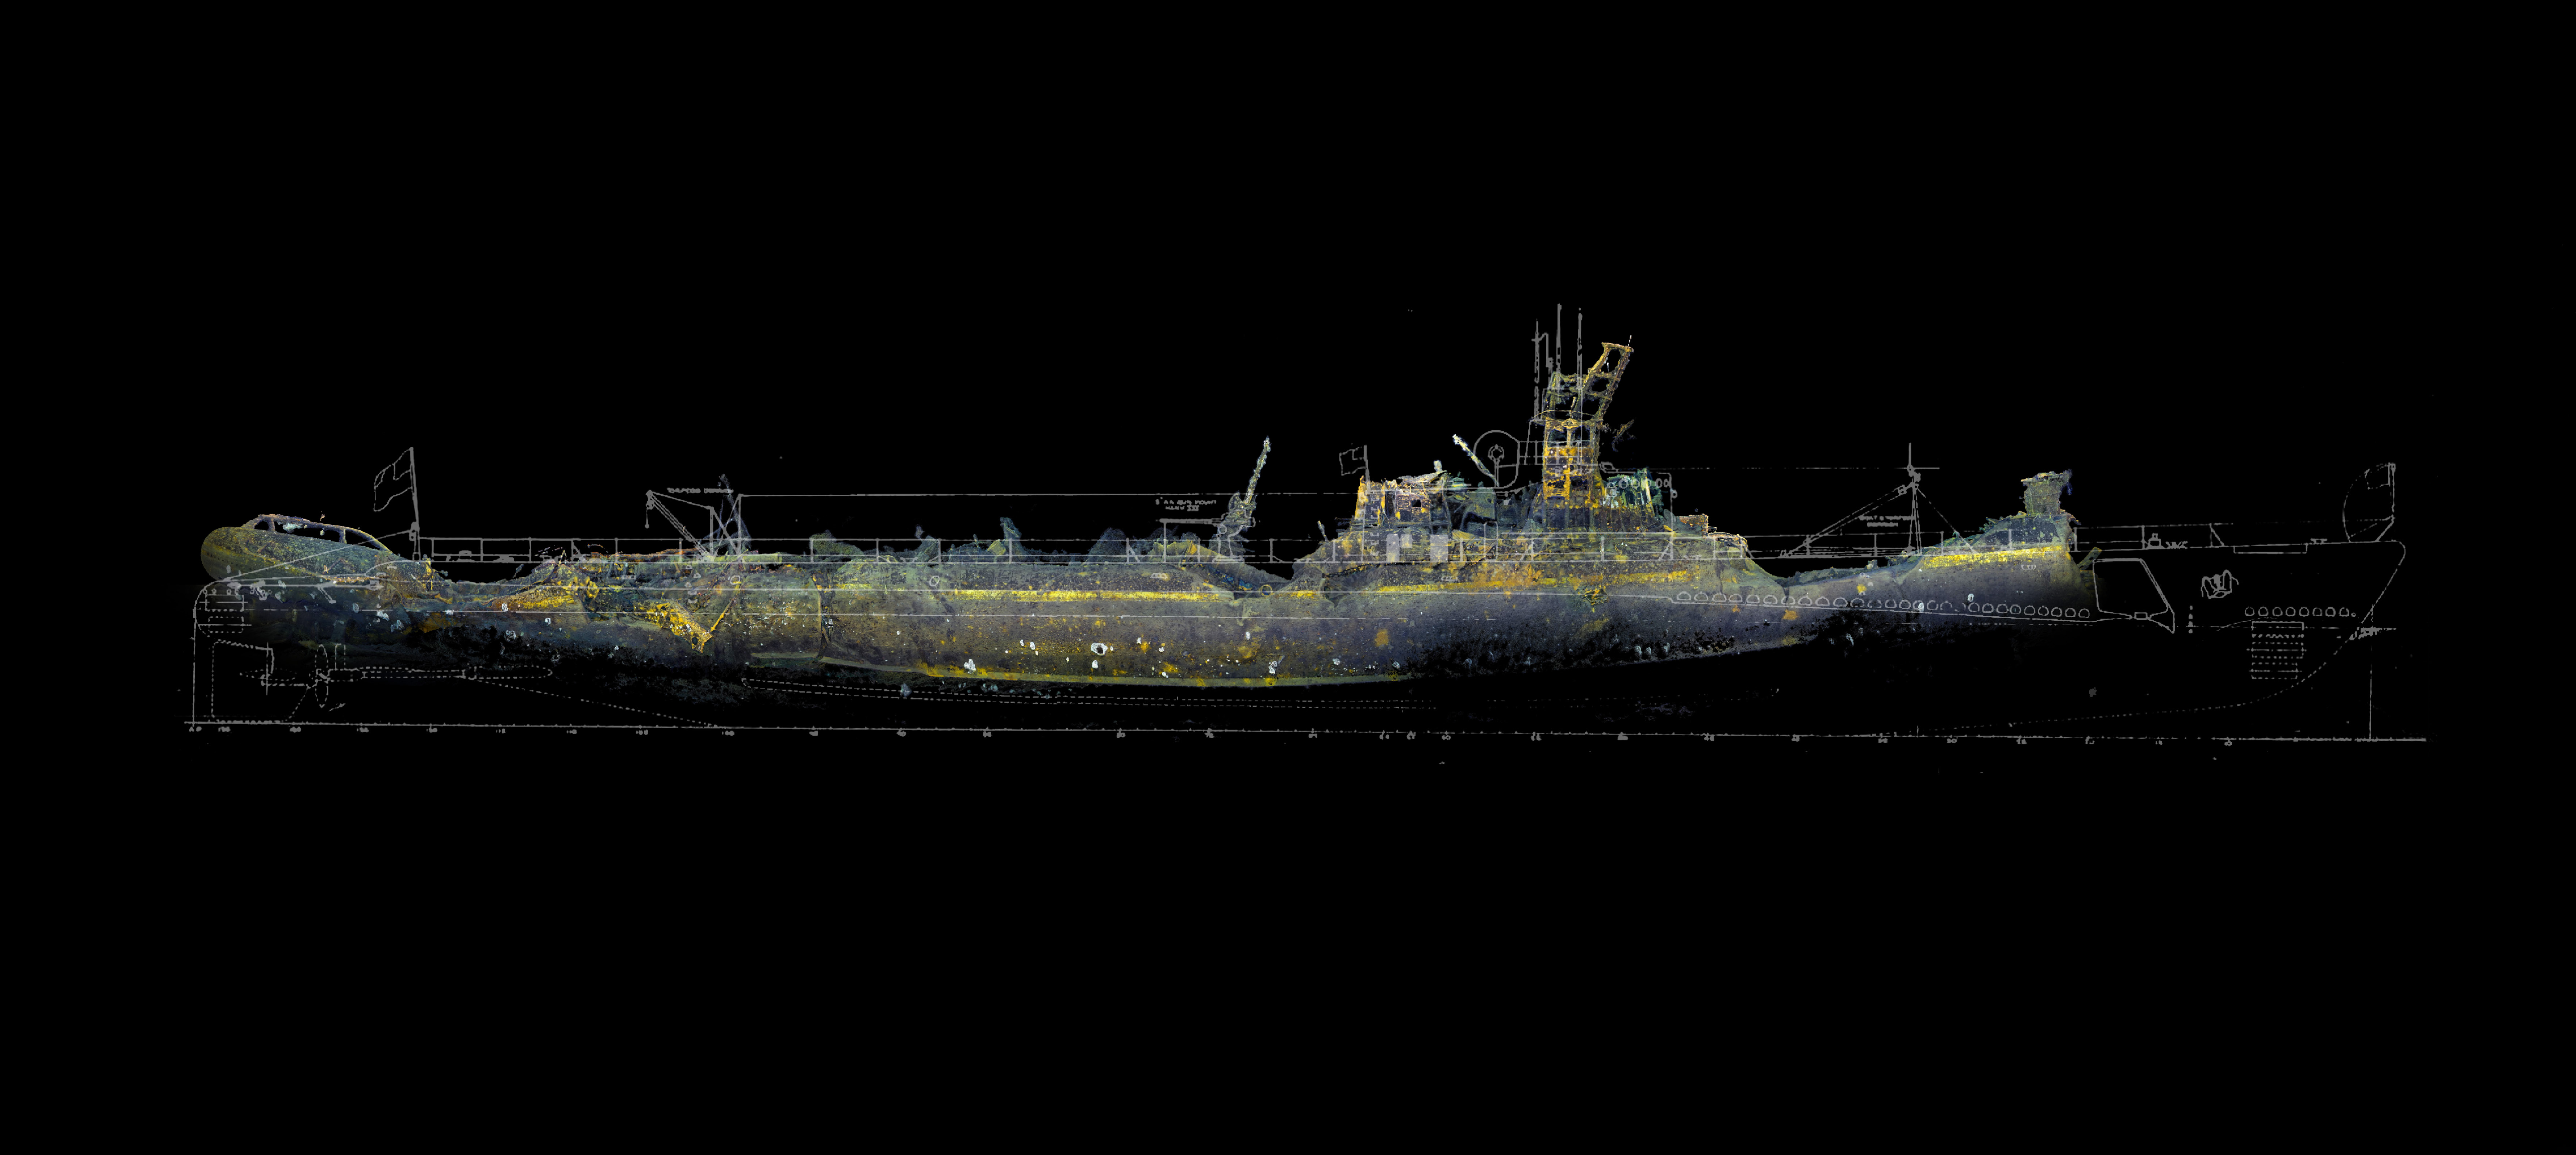 USS Grunion stern section